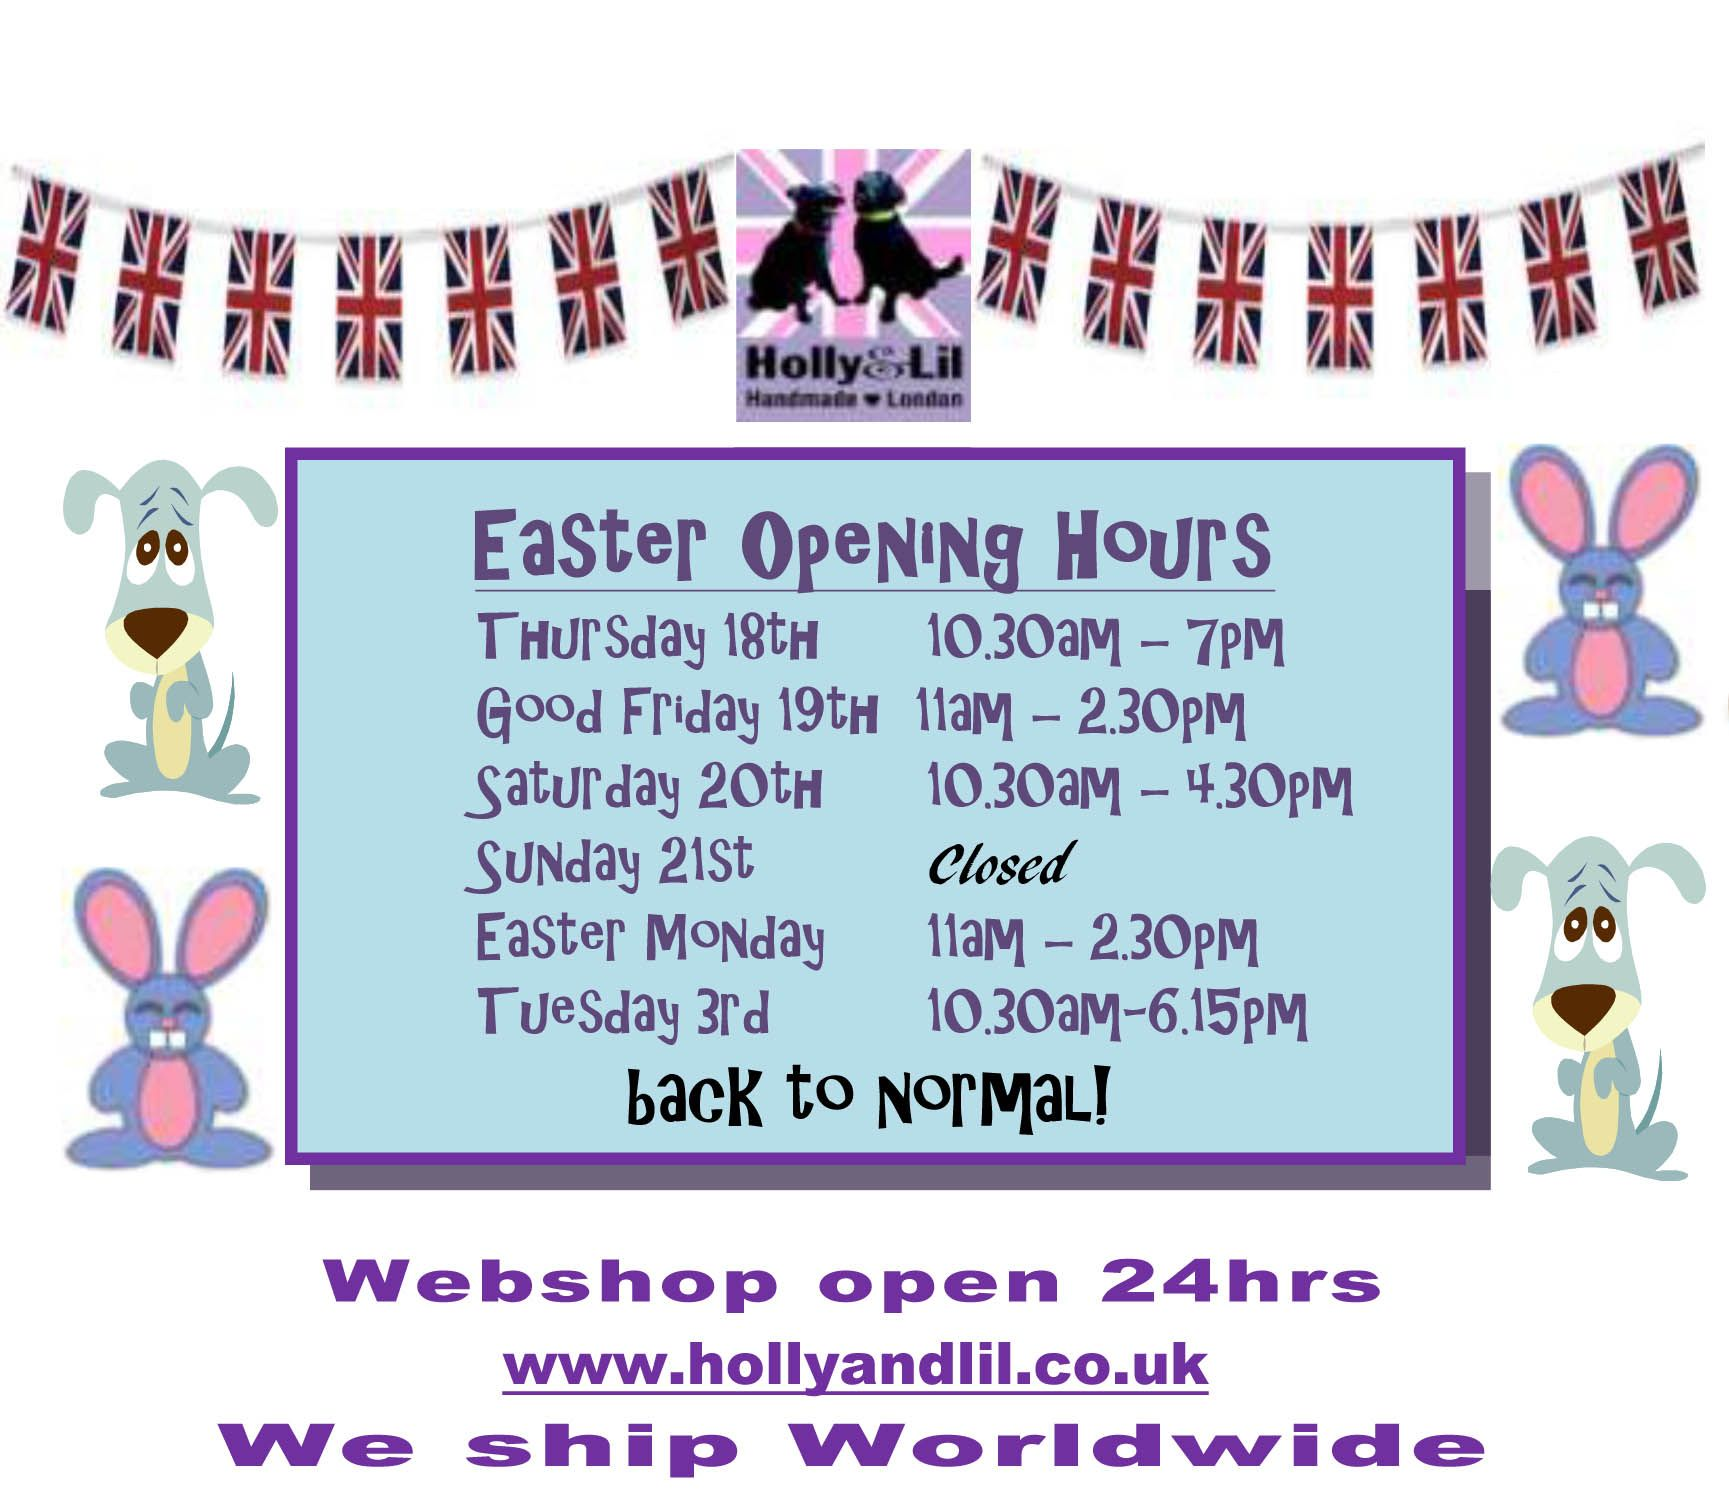 Easter Opening Times for Tower Bridge Road Shop